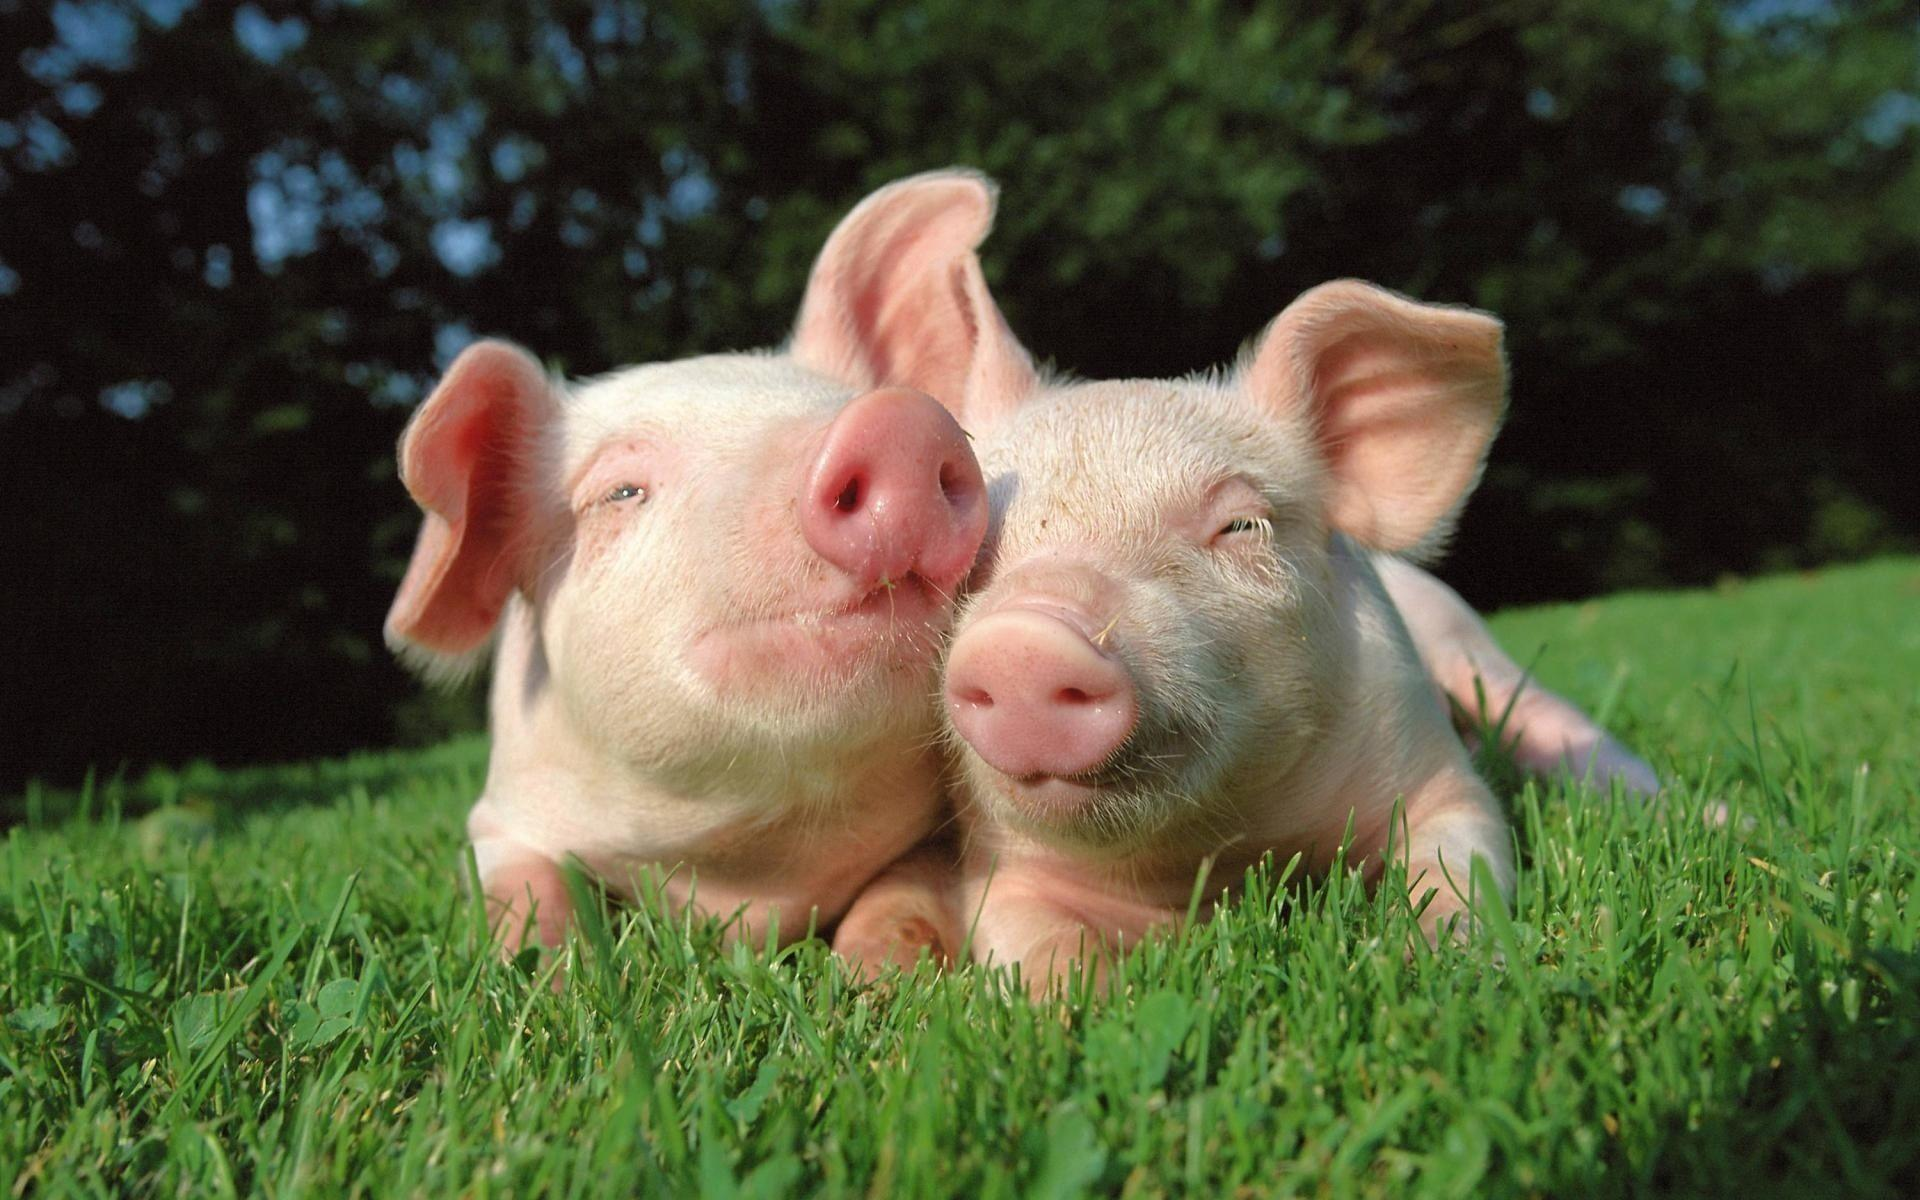 Pig Wallpapers - Full HD wallpaper search - page 2